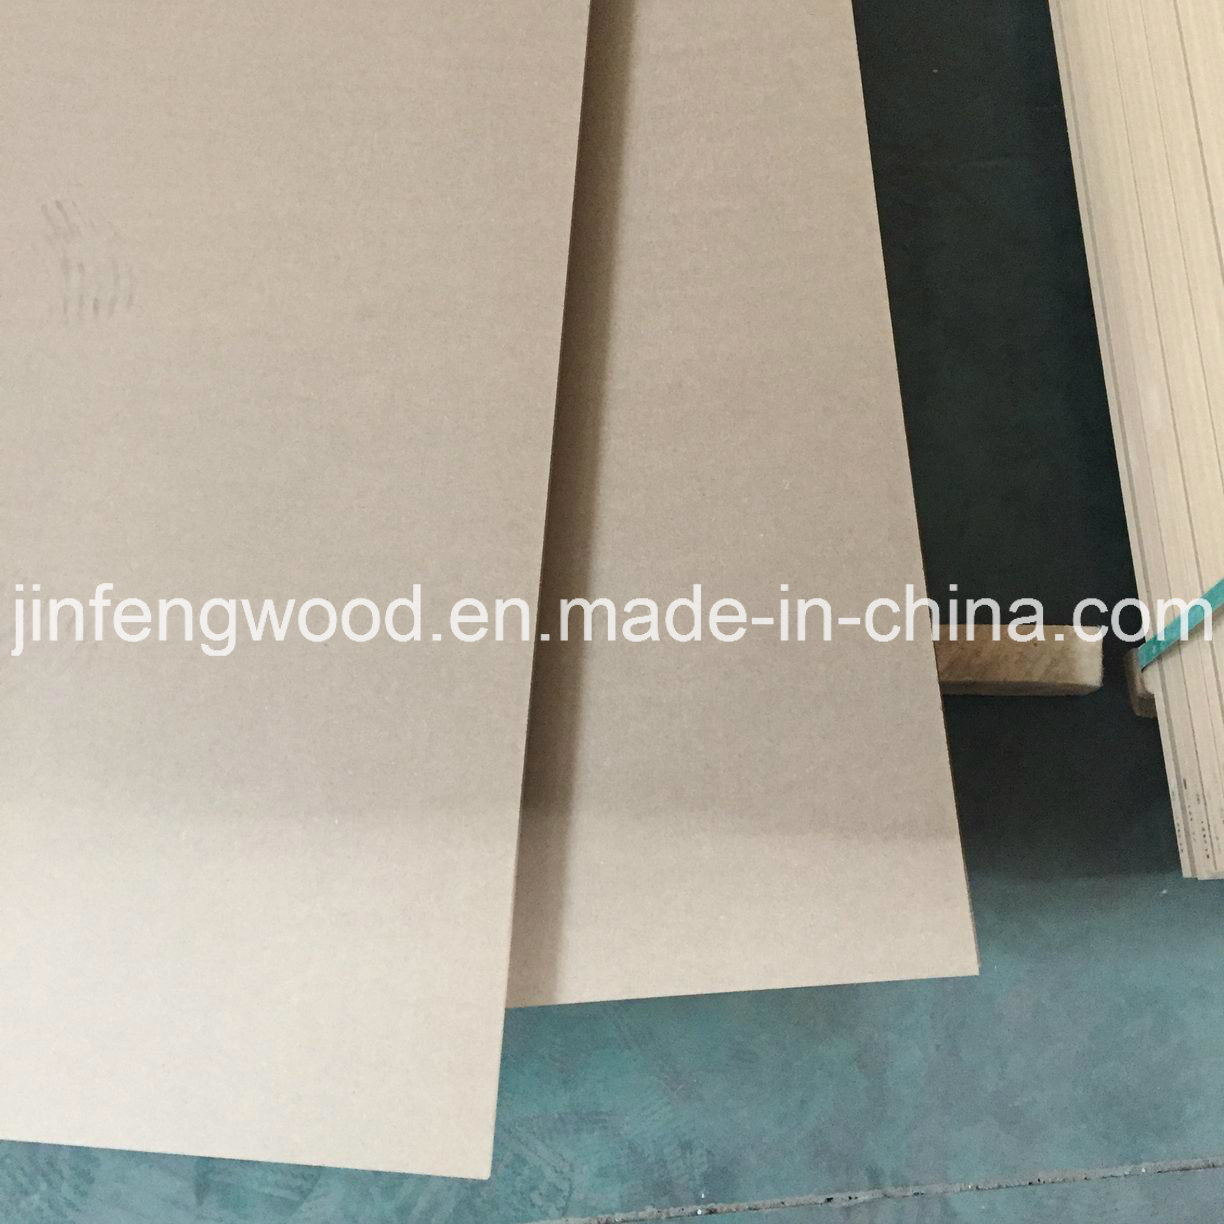 Plain MDF/Sanding MDF Medium Density Fiberboard Raw Plain MDF pictures & photos